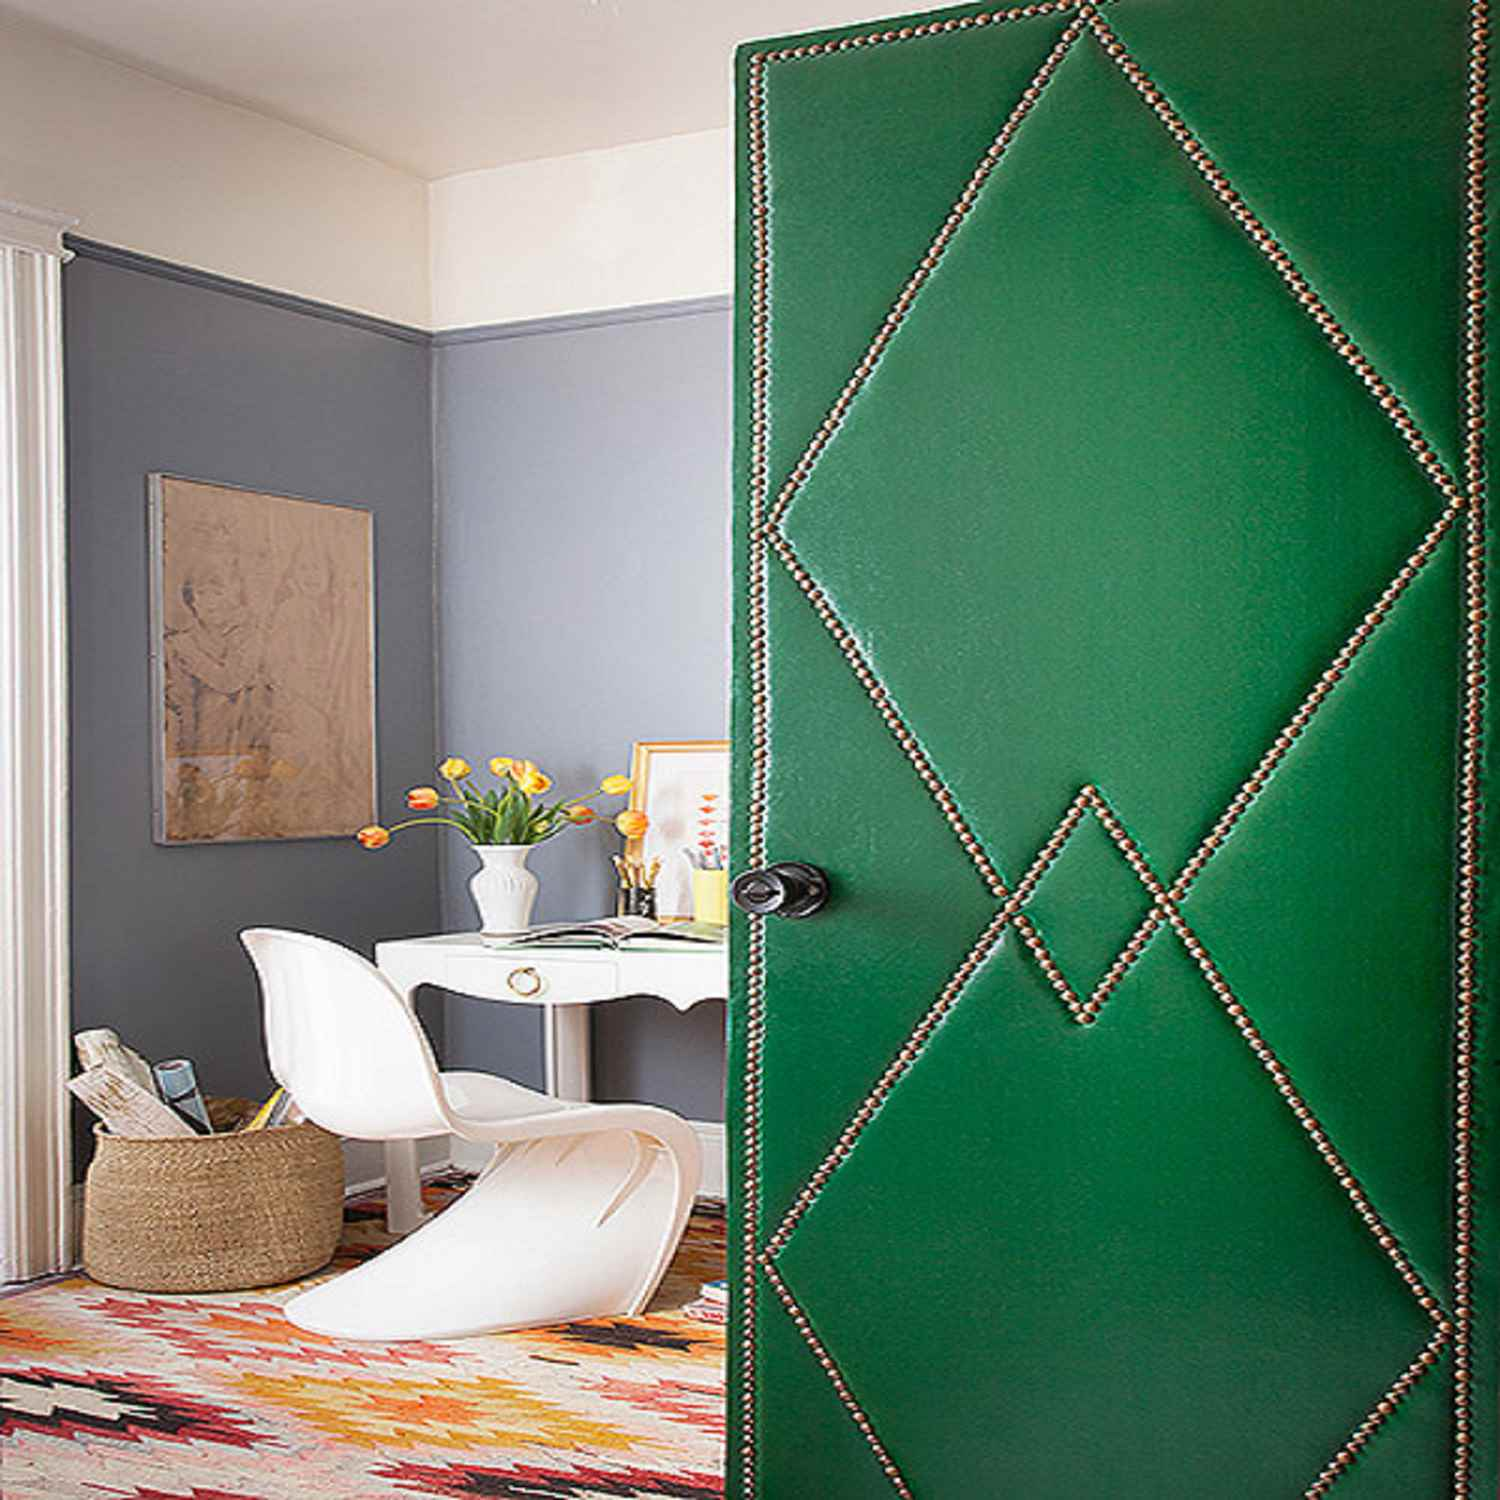 Easy Diy Ways To Decorate Closet Doors